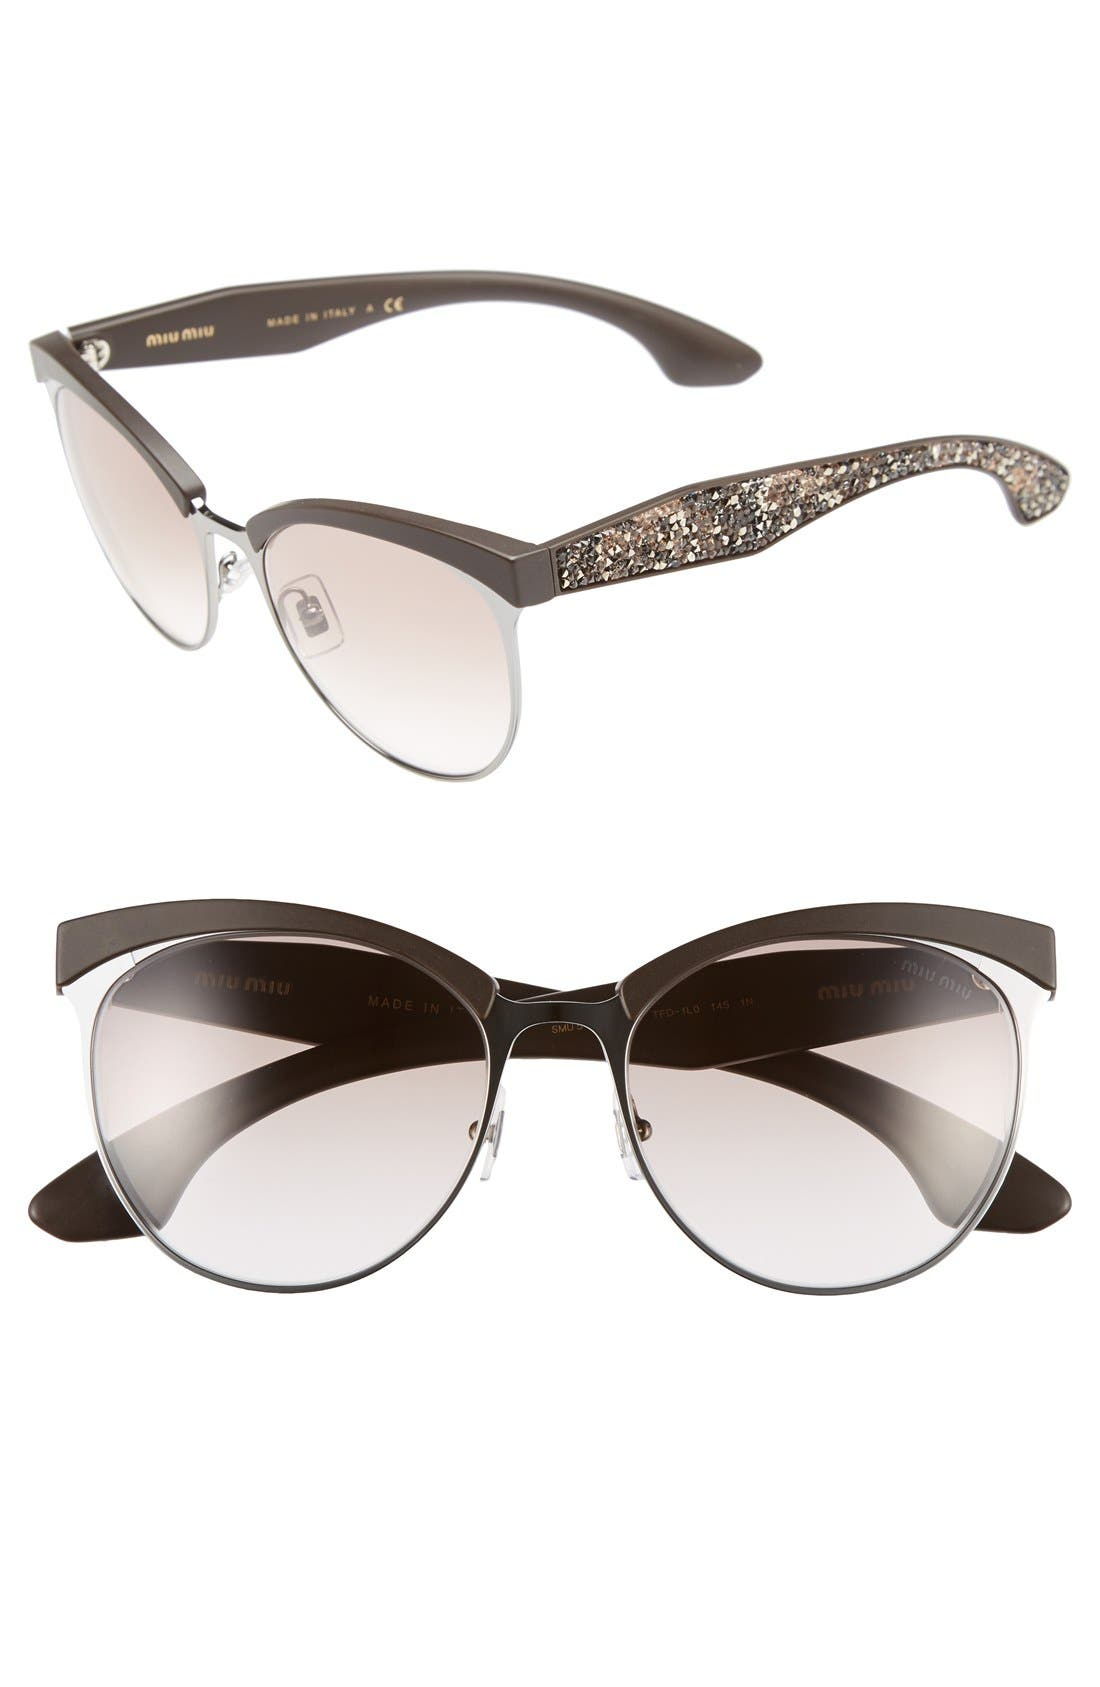 Main Image - Miu Miu 56mm Pavé Cat Eye Sunglasses